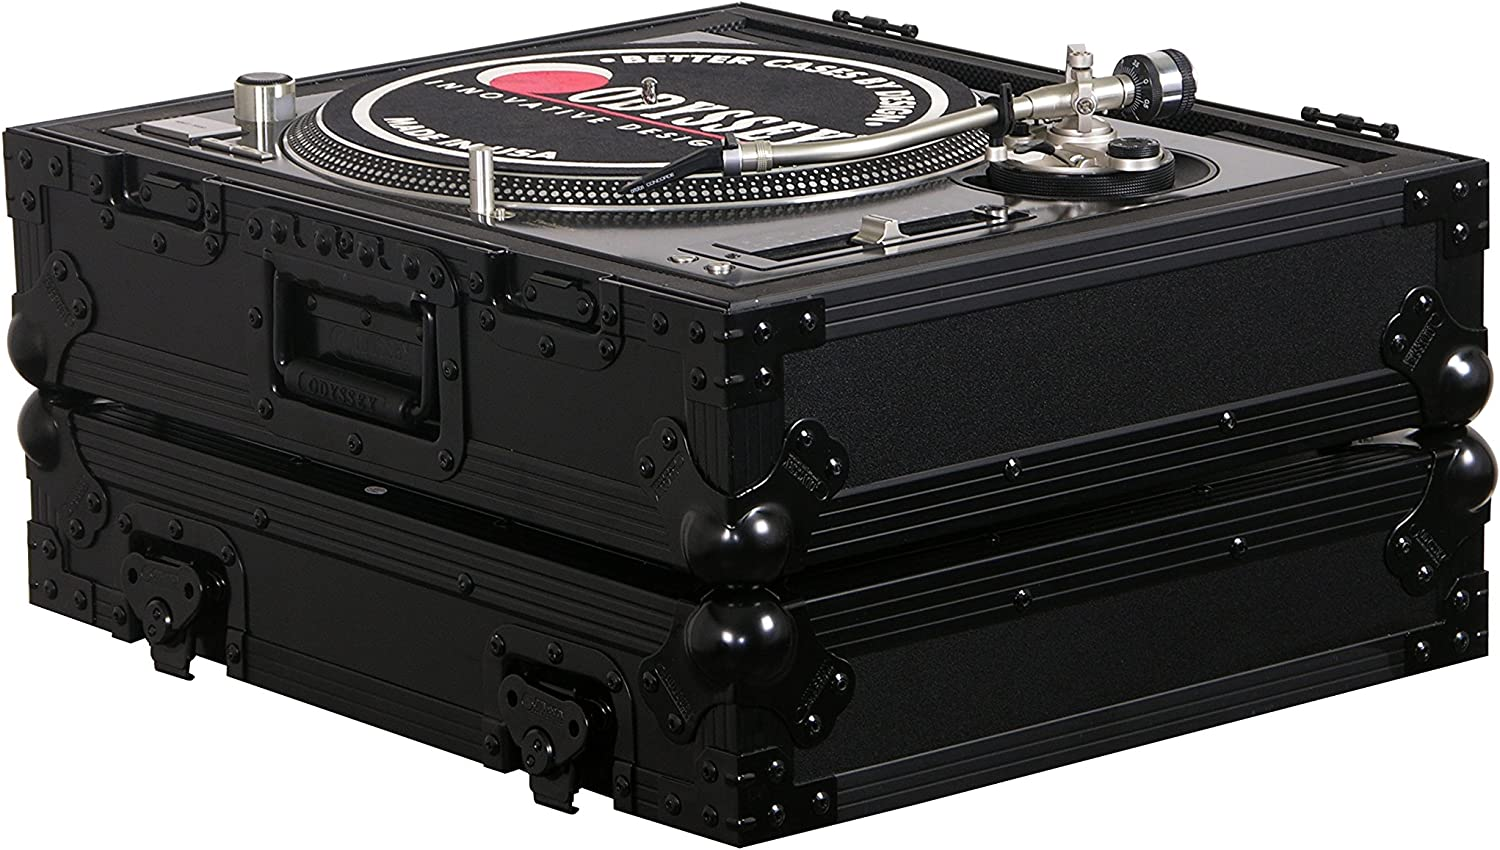 Odyssey Selling and selling FZ1200BL Black Mesa Mall Label Flight Case Turntable